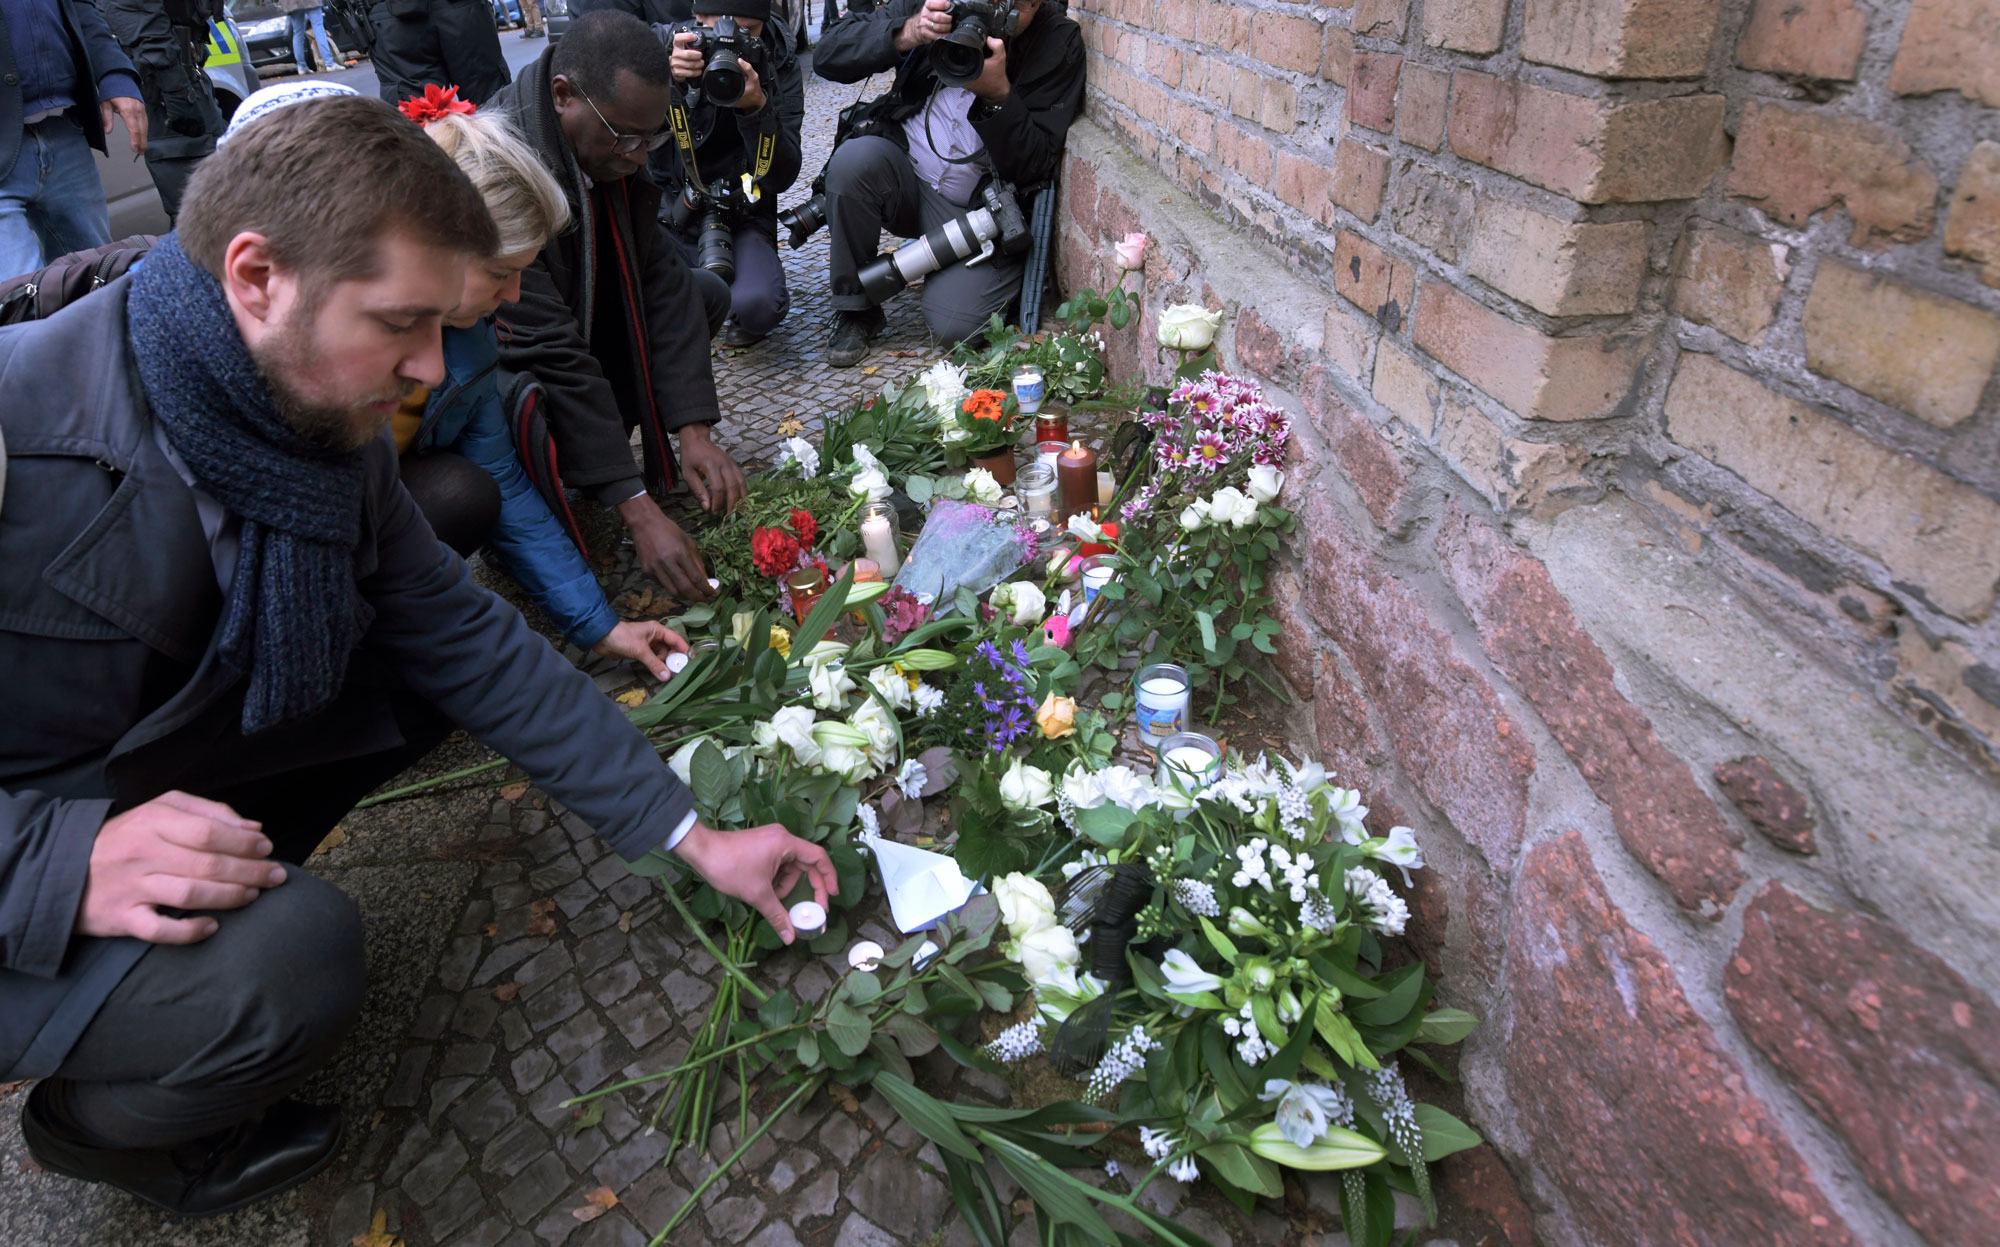 Mourners lay flowers at the site of the Halle synagogue attack